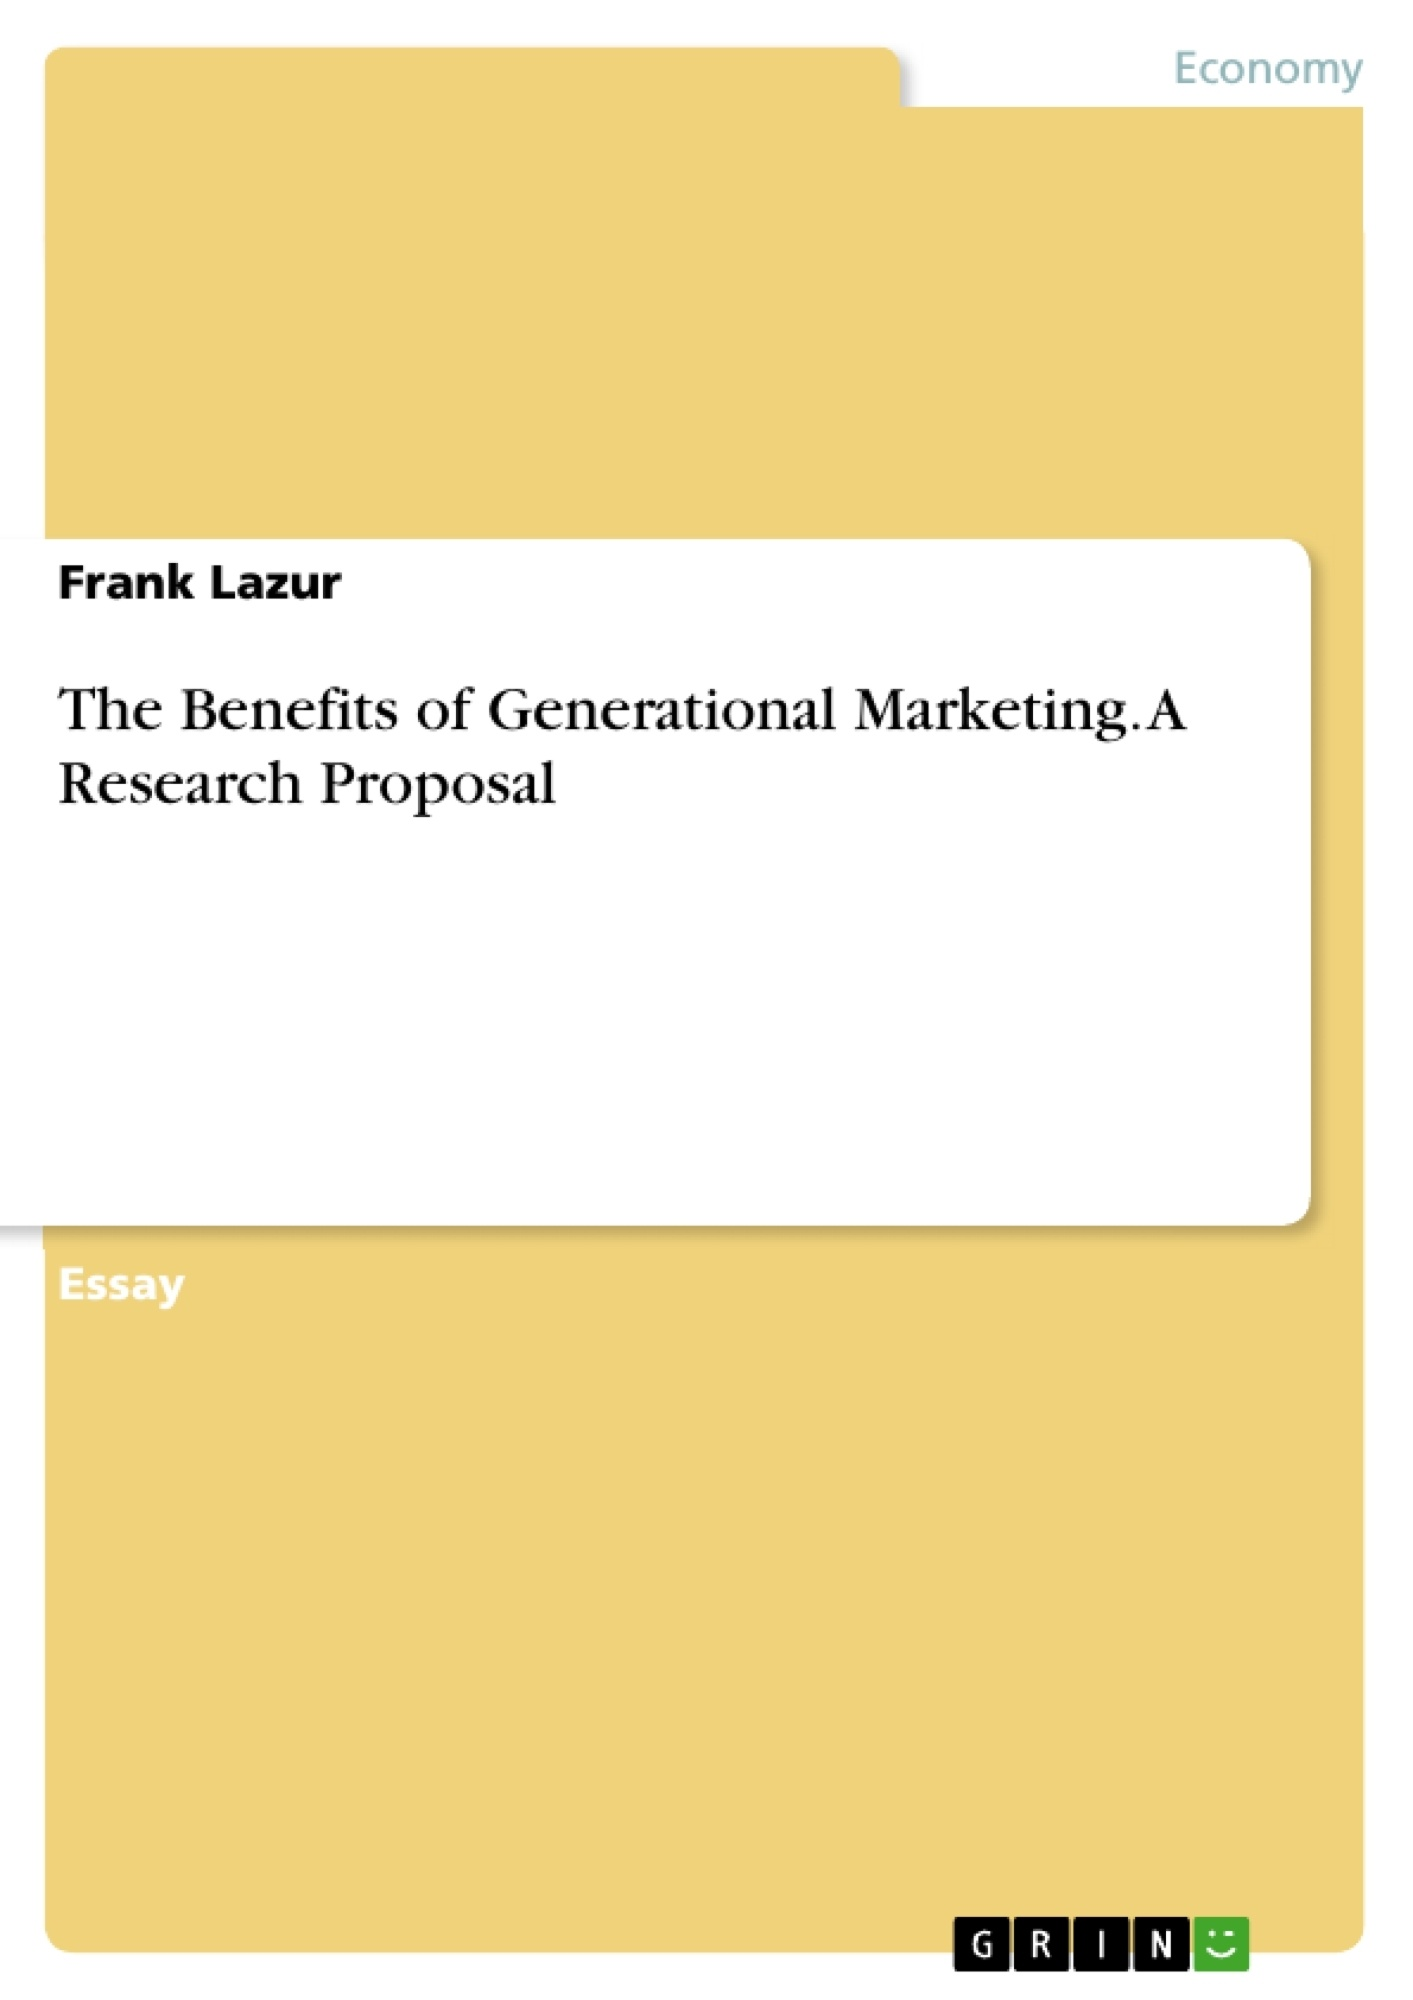 Title: The Benefits of Generational Marketing. A Research Proposal